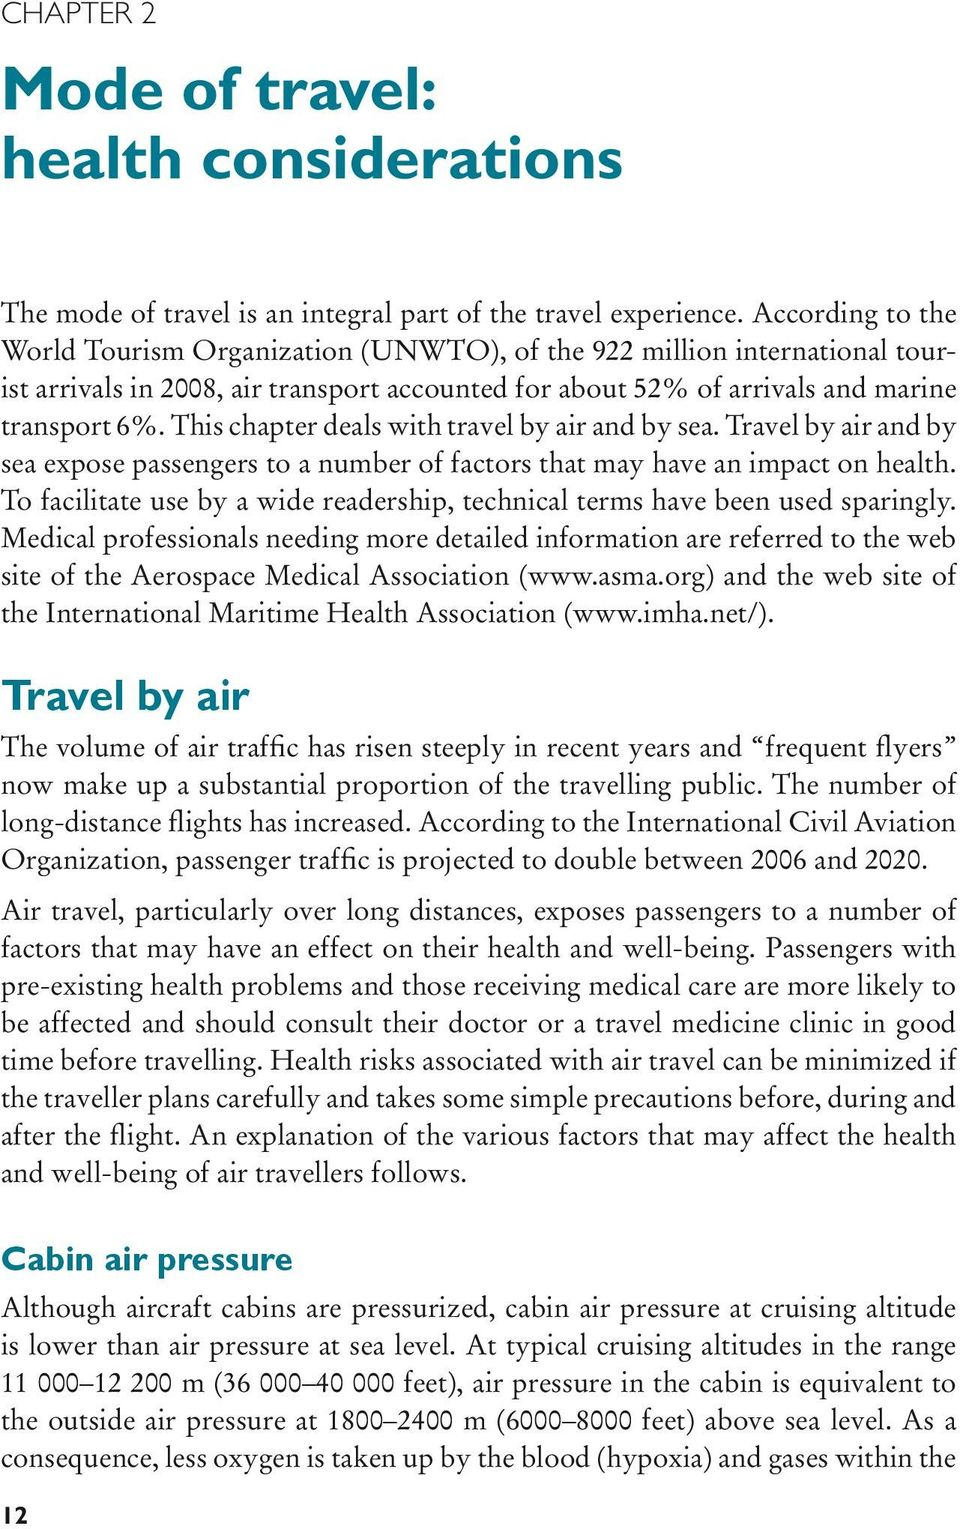 This chapter deals with travel by air and by sea. Travel by air and by sea expose passengers to a number of factors that may have an impact on health.